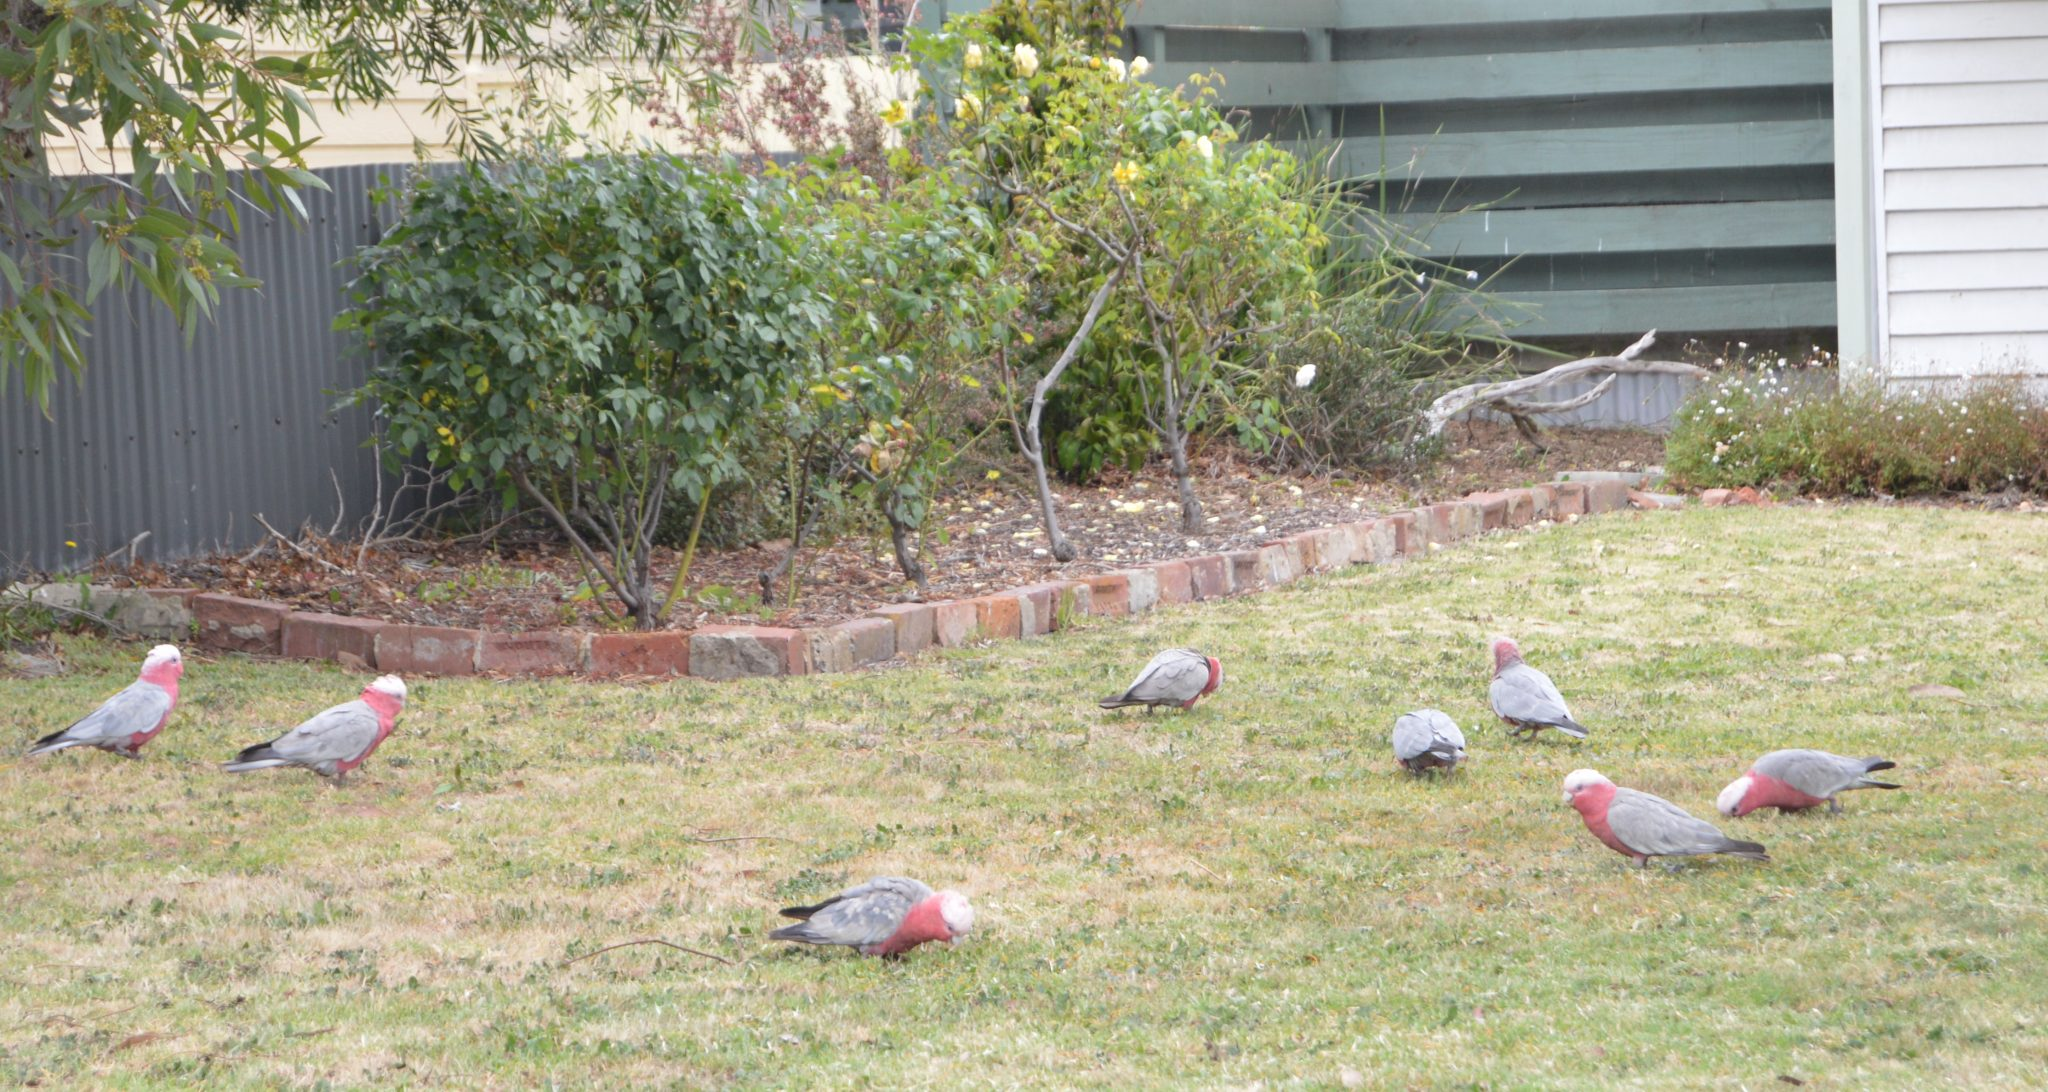 137.1. Wild gullahs were on a lawn in Wonthaggi, Victoria, Australia, December 2015